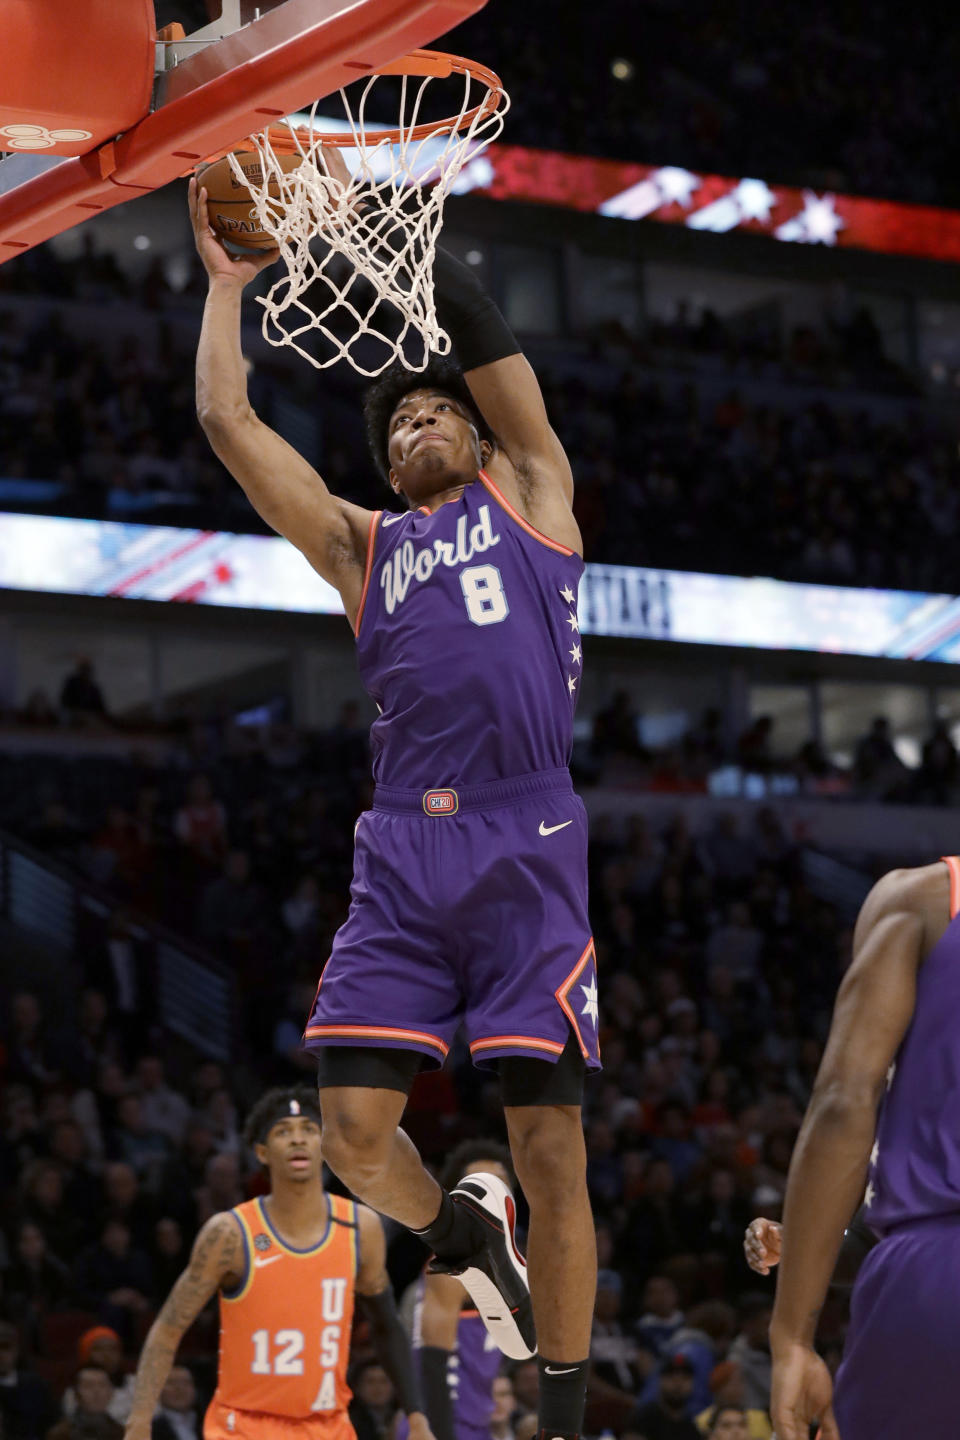 World forward Rui Hachimura, of the Washington Wizards, goes up for a dunk against the United States during the first half of the NBA Rising Stars basketball game in Chicago, Friday, Feb. 14, 2020. (AP Photo/Nam Y. Huh)